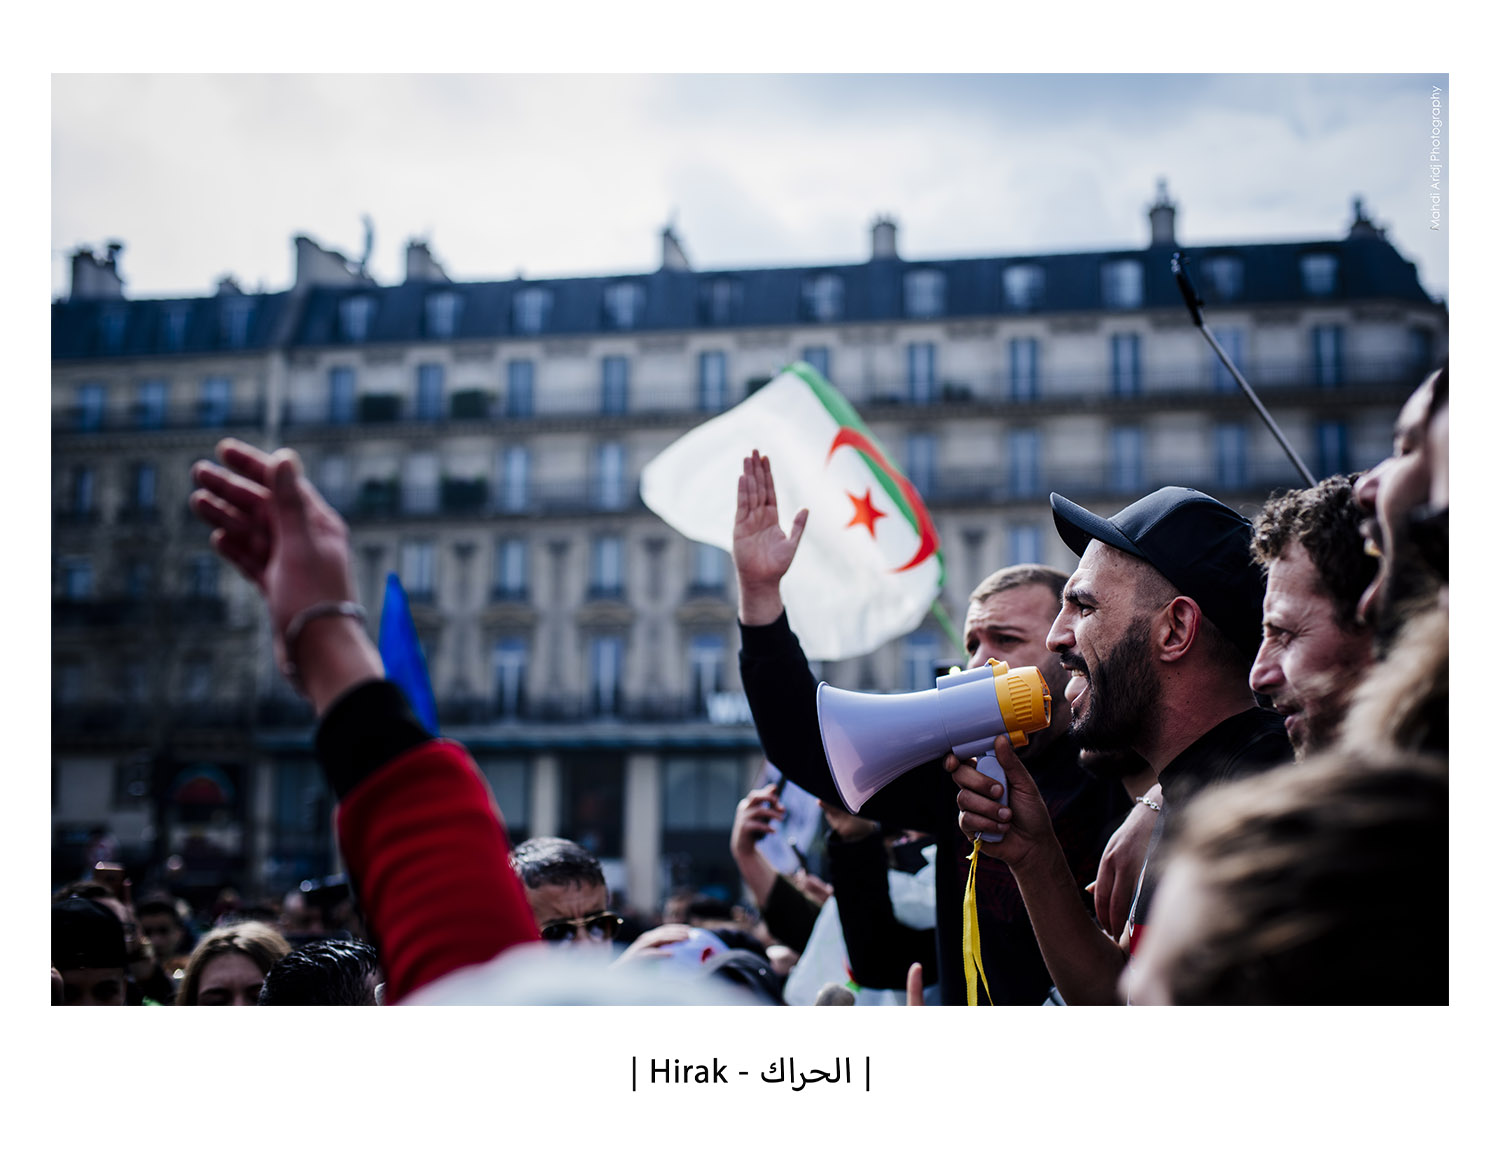 Hirak - الحراك - Mouvement du 22 Février 2019 à Paris - The 2019 Algerian protests in Paris